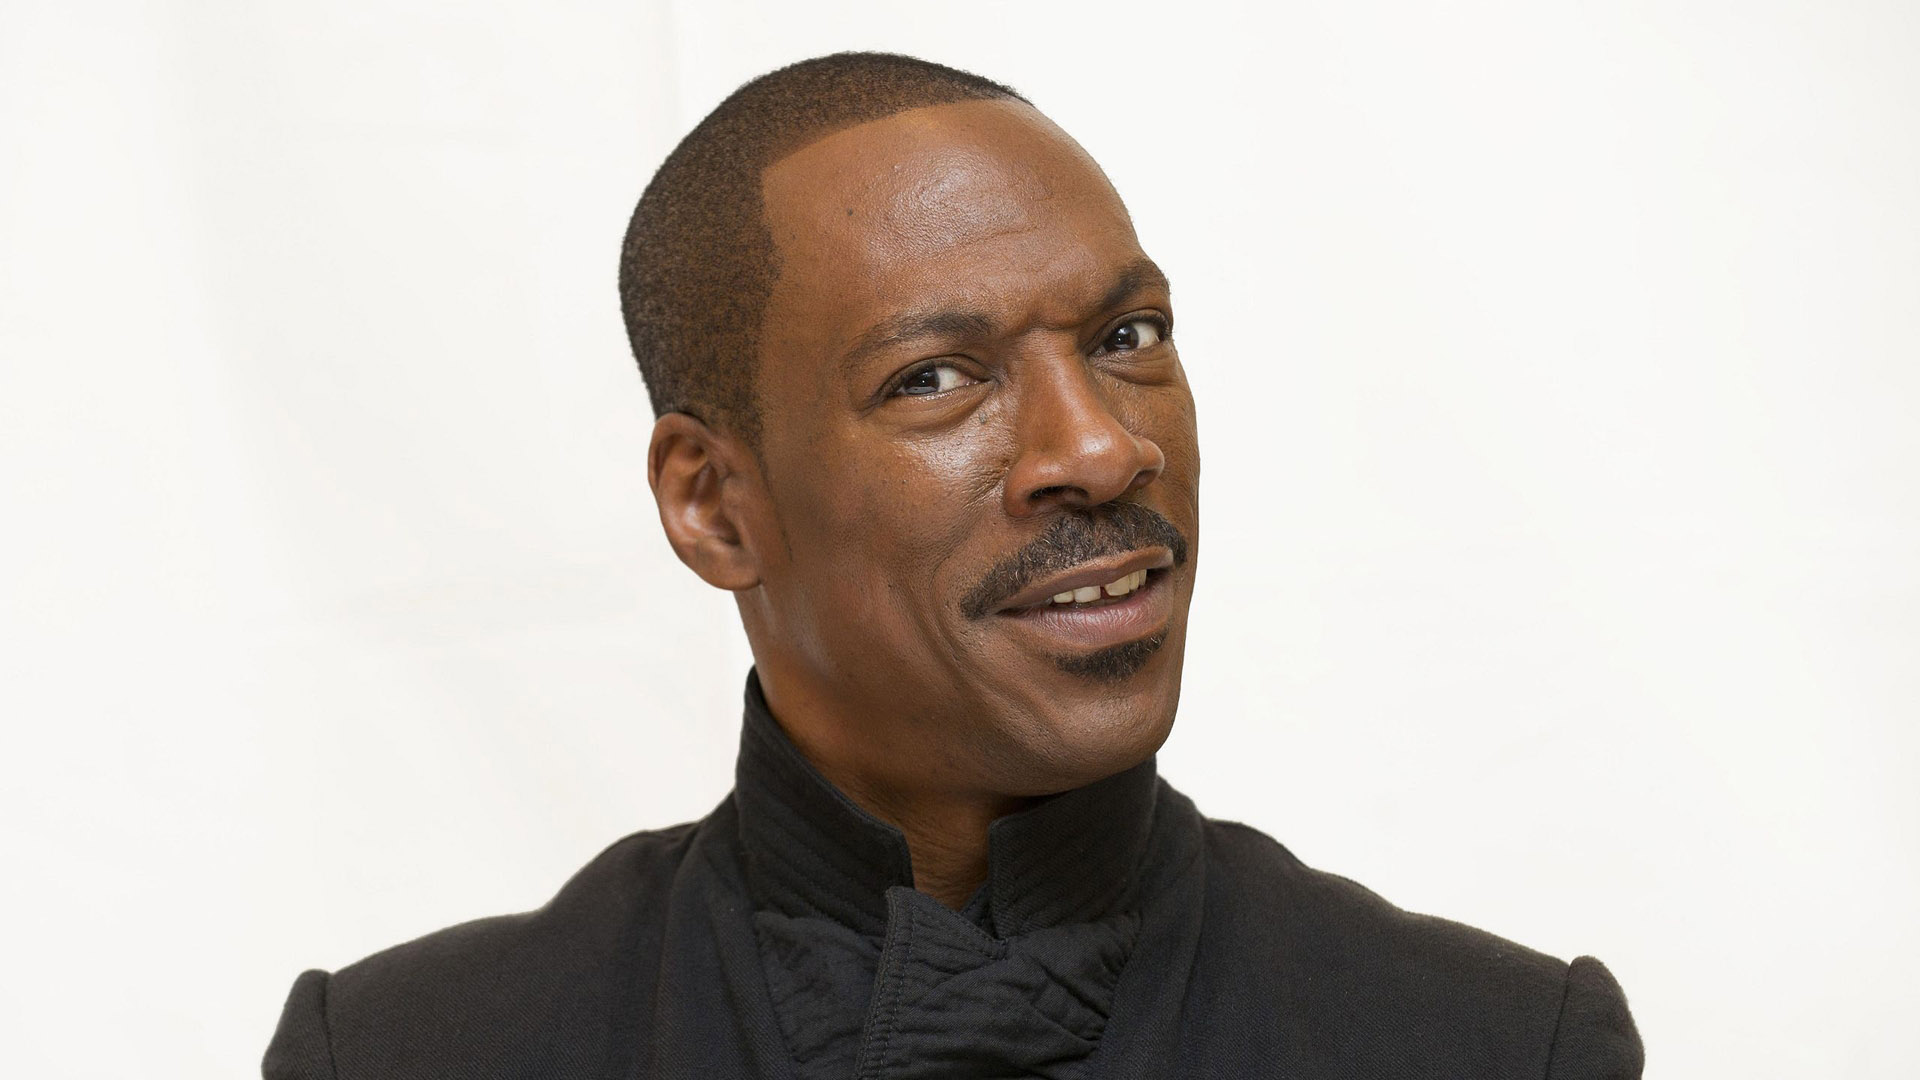 Eddie Murphy Popular Comedian hd wallpaper Wallpaper